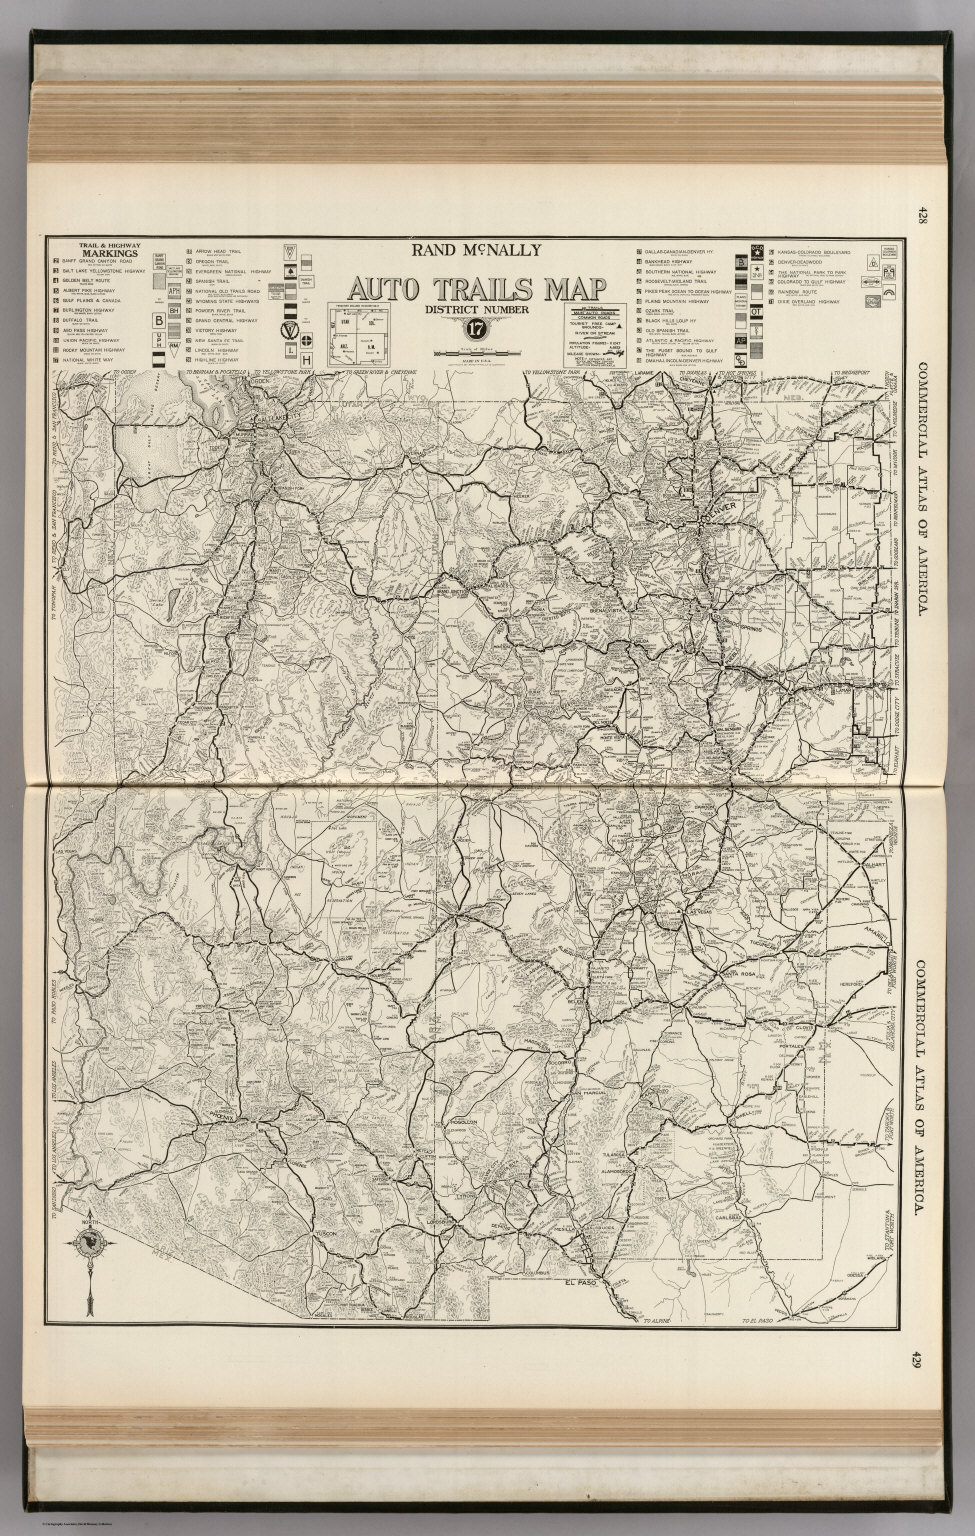 AutoTrails Map, Utah, Colorado, New Mexico, Arizona.